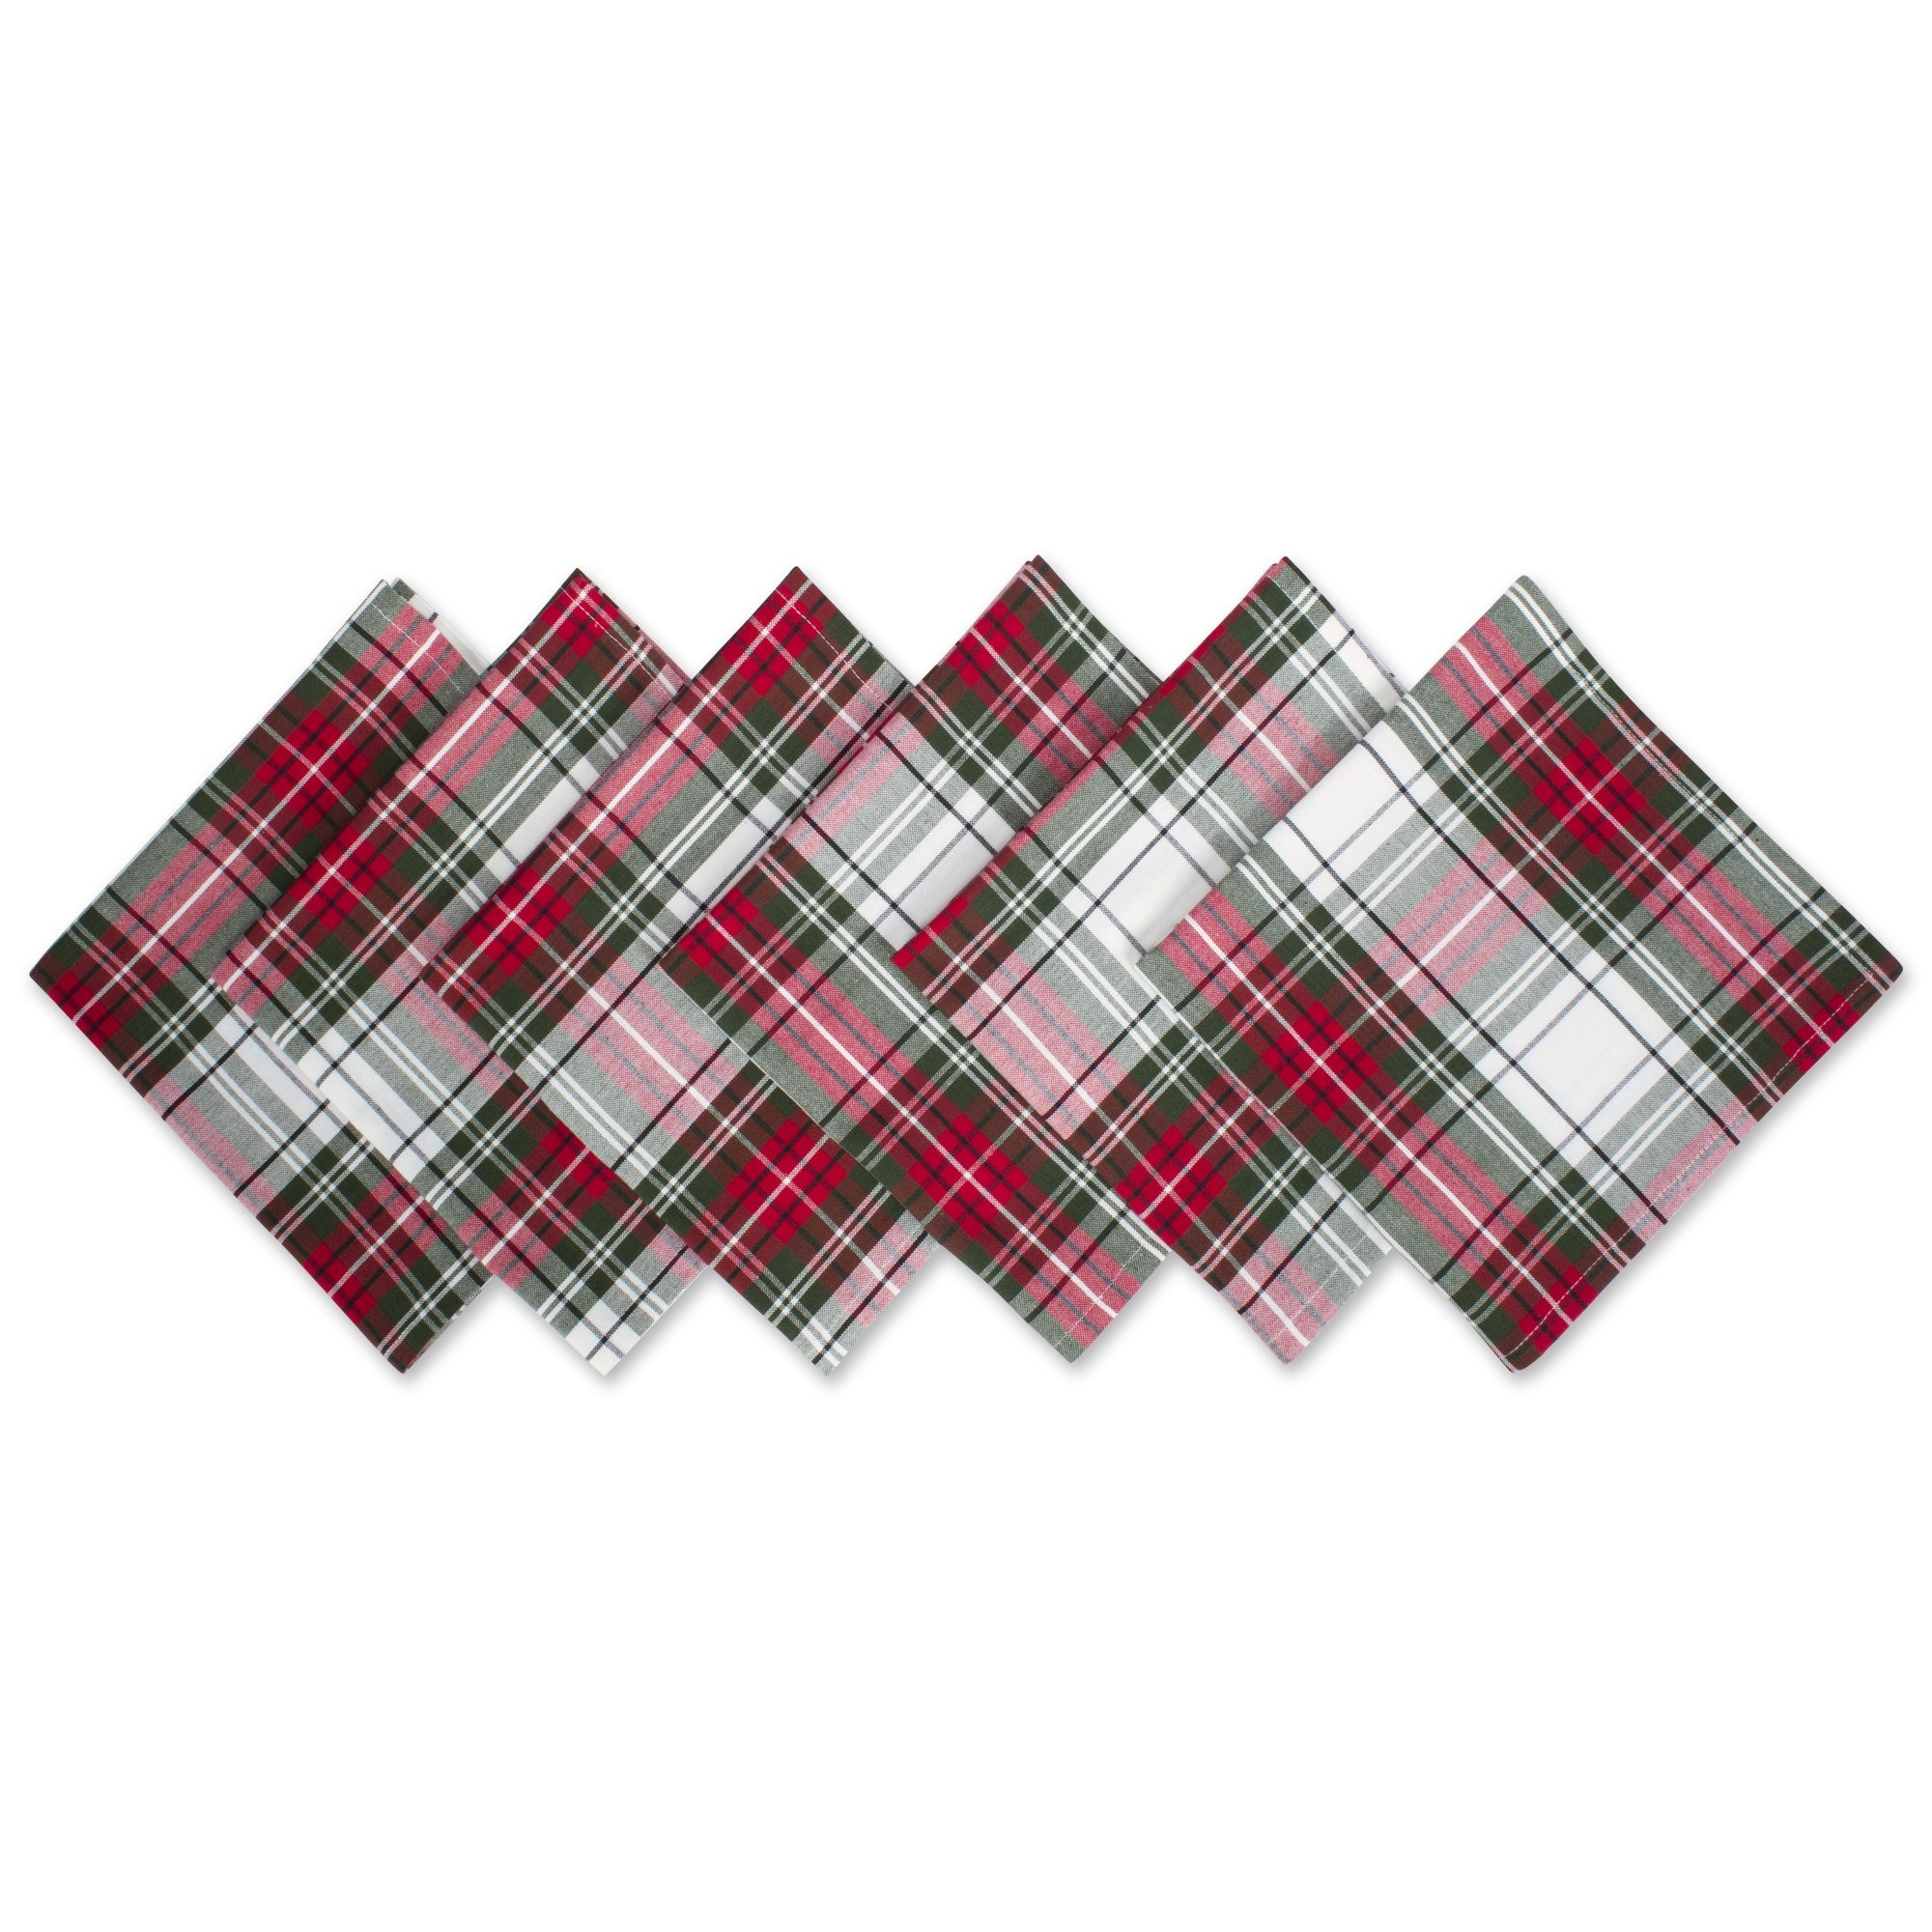 DII Oversized 20x20'' Cotton Napkins, Pack of 6, Christmas Plaid - Perfect for Dinner Parties, Christmas, Holidays, or Everyday use by DII